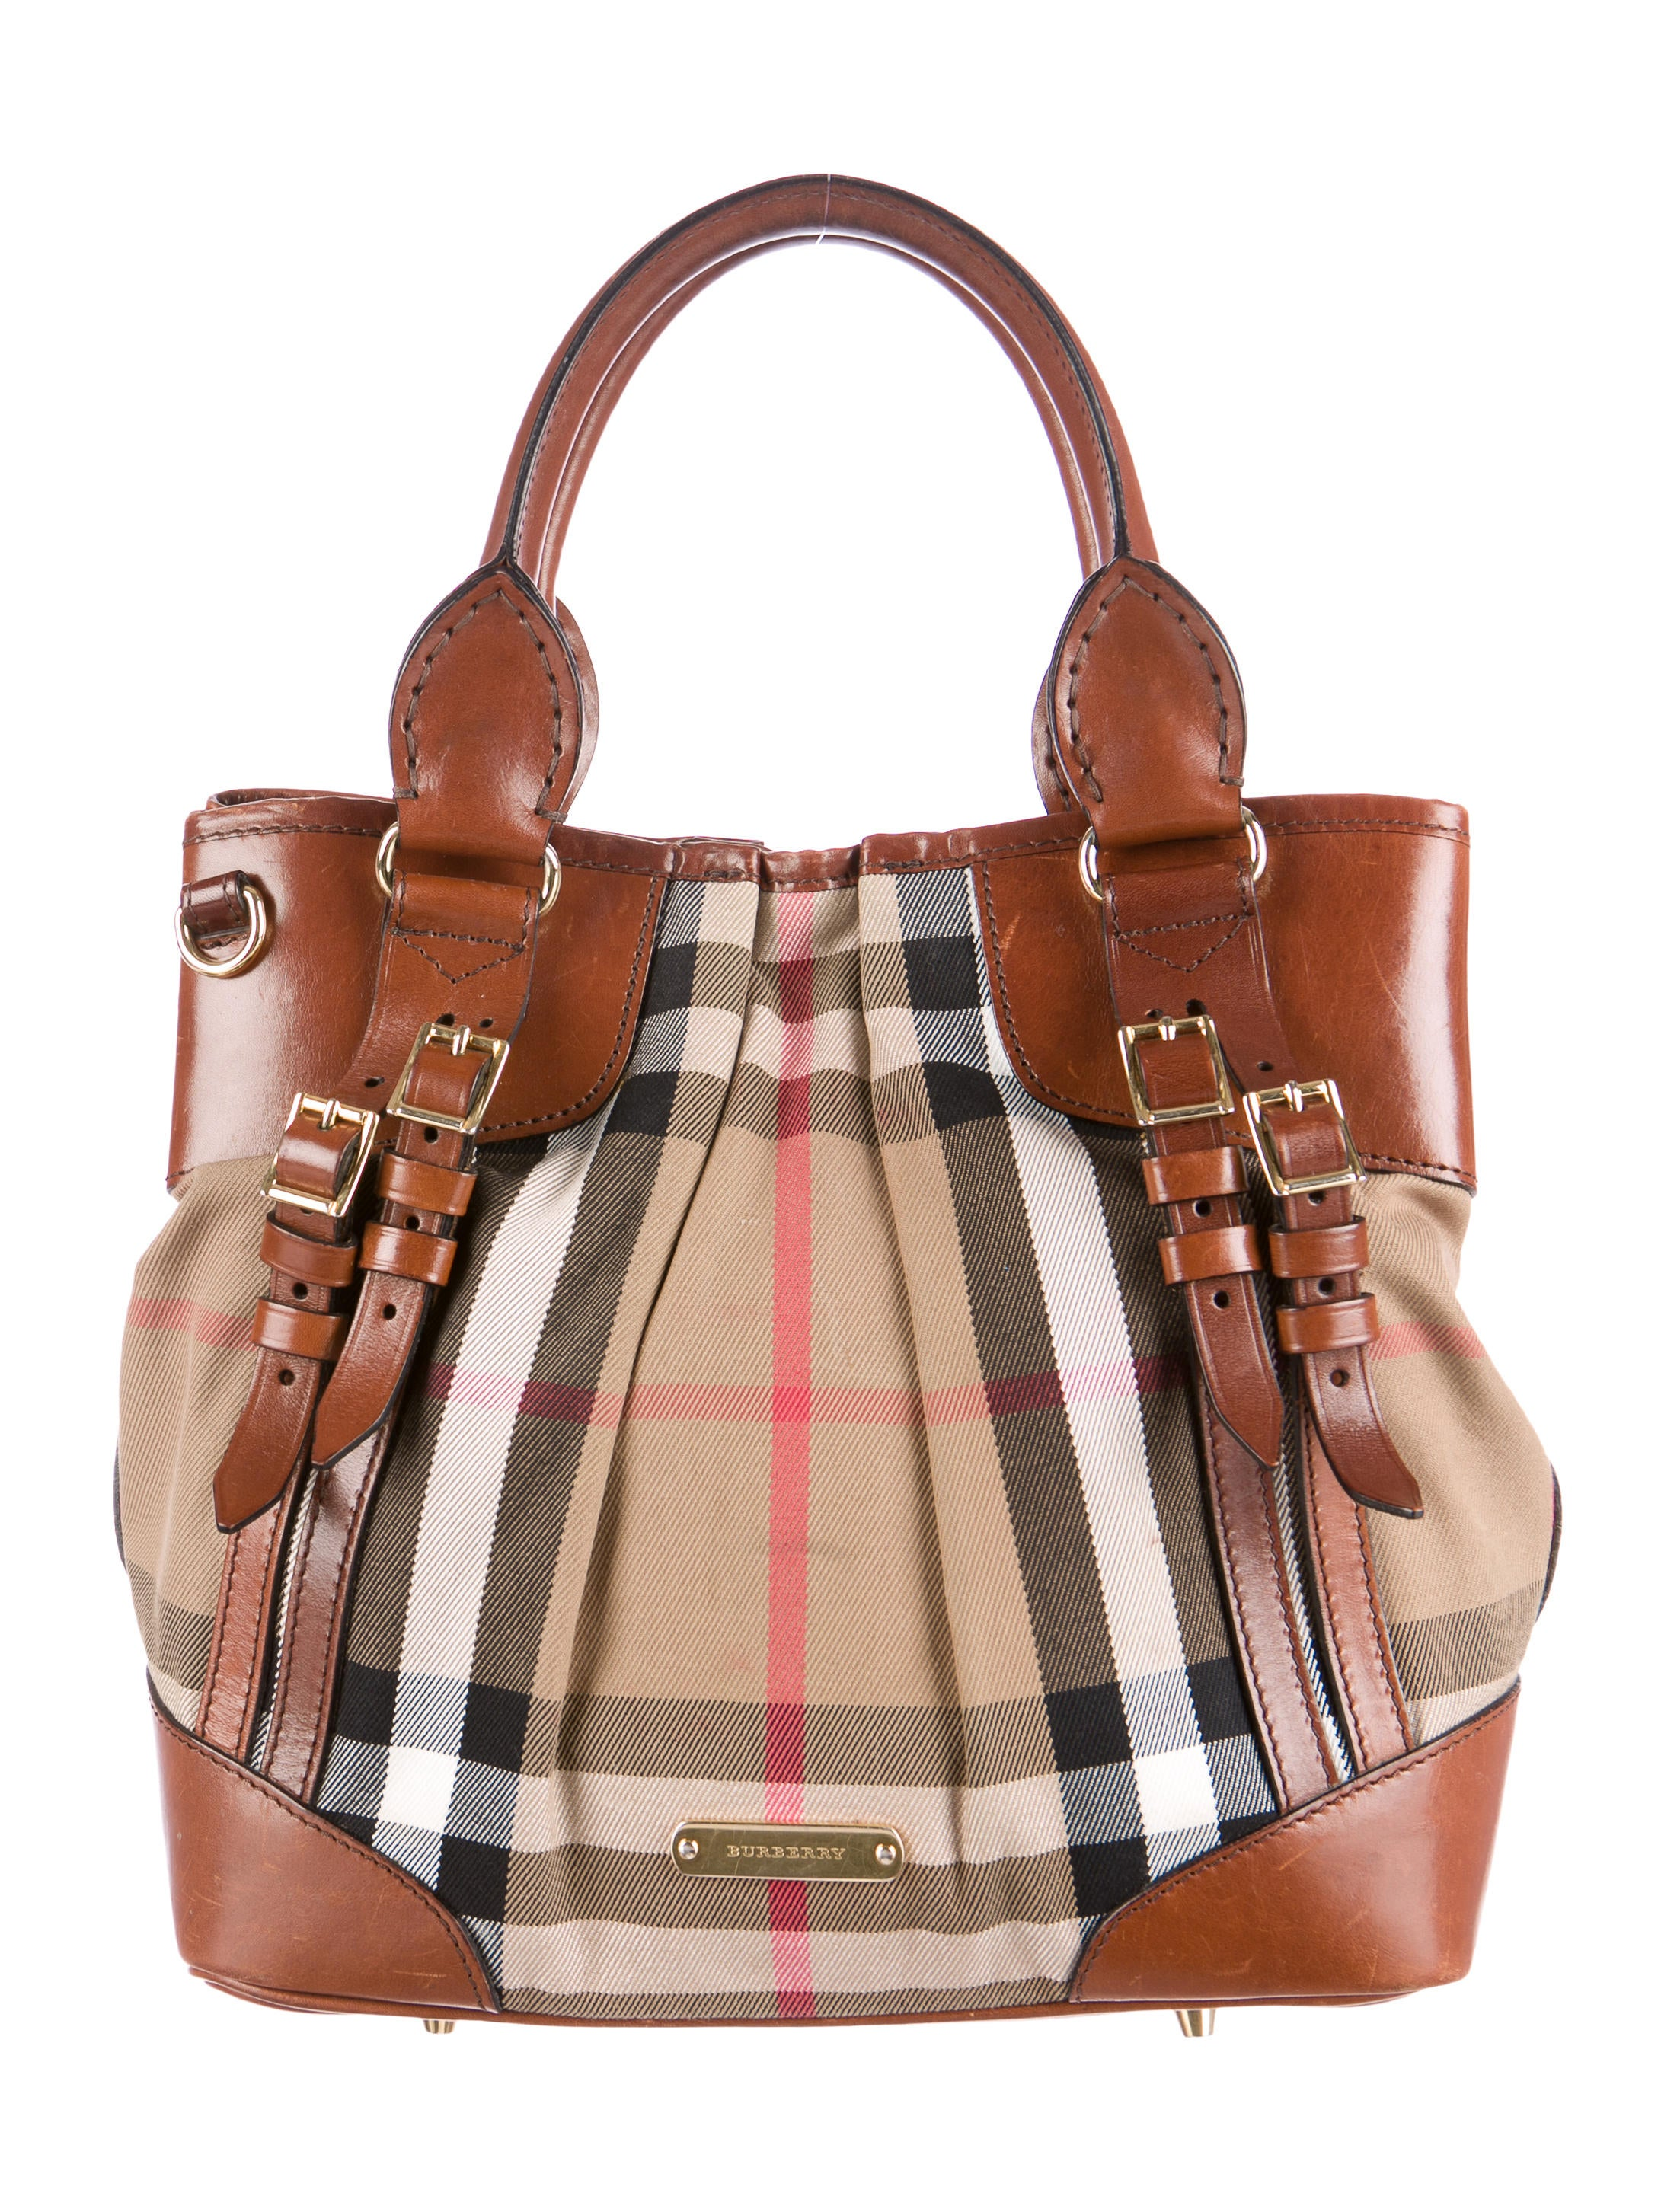 bfa30f00676 Burberry Bridle House Check Whipstitch Tote - Handbags - BUR46518 ...